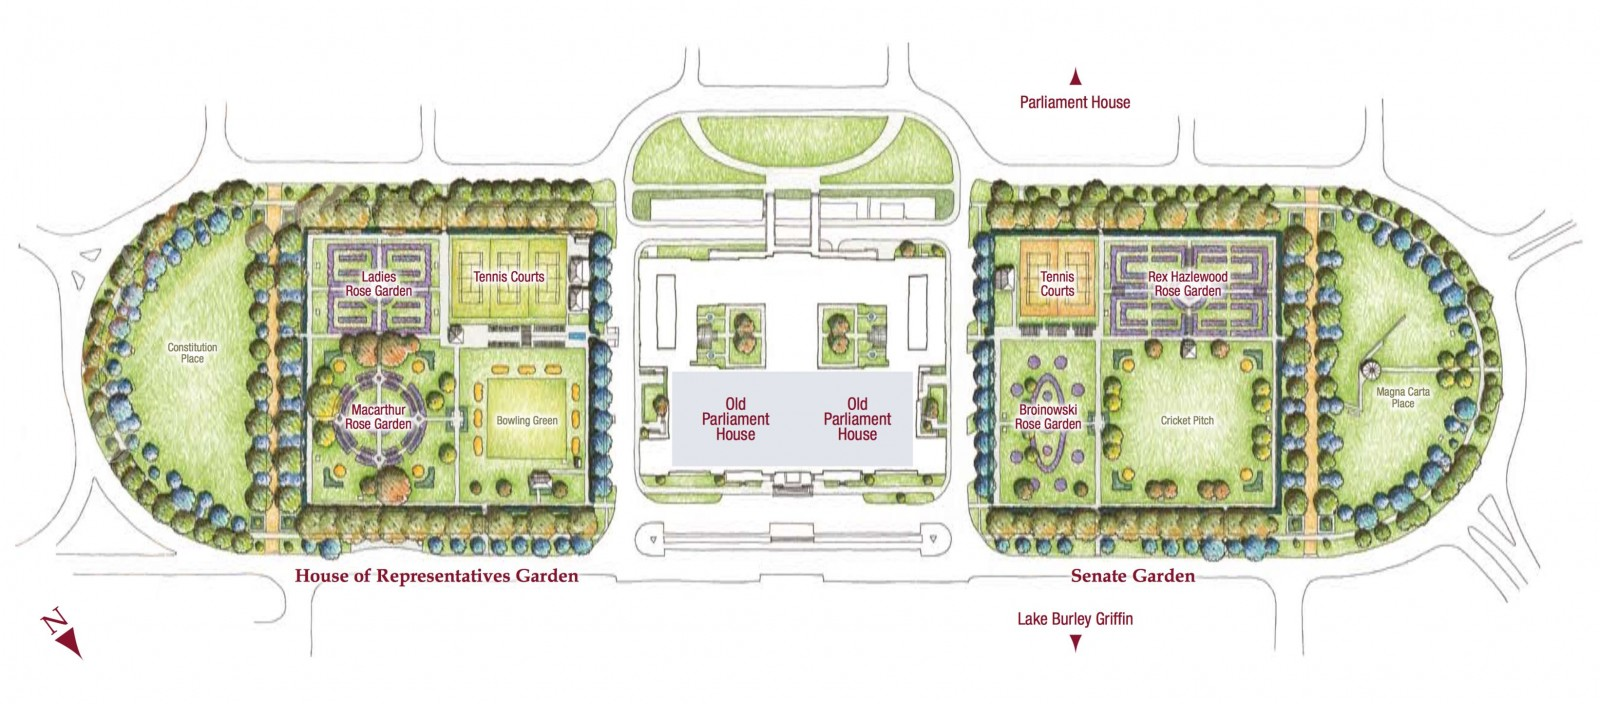 Map of the Gardens - Courtesy of National Capital Authority